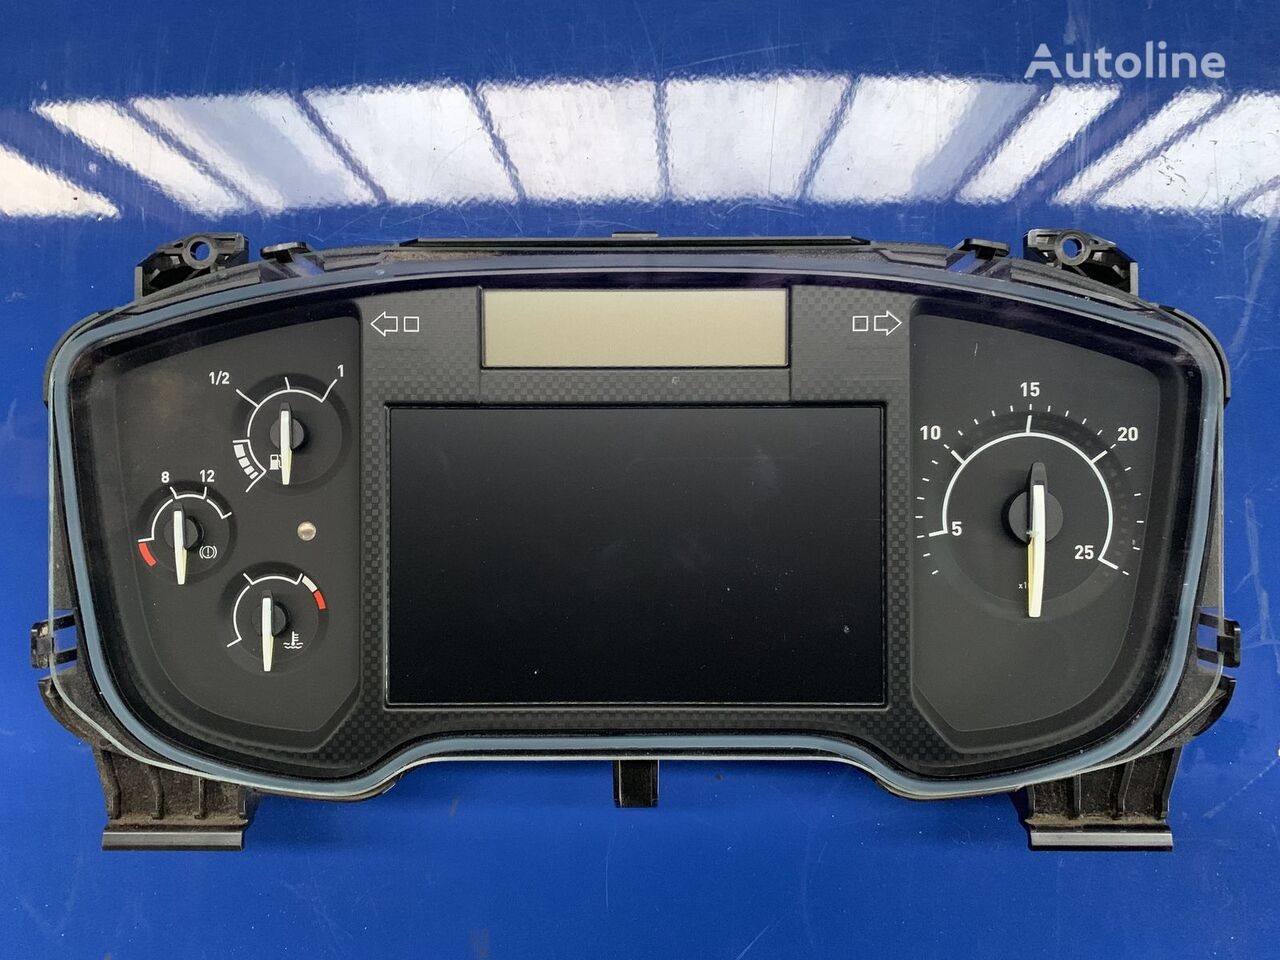 RENAULT Continental Automative (22166228) dashboard for RENAULT T SERIES 480 Euro 6  tractor unit